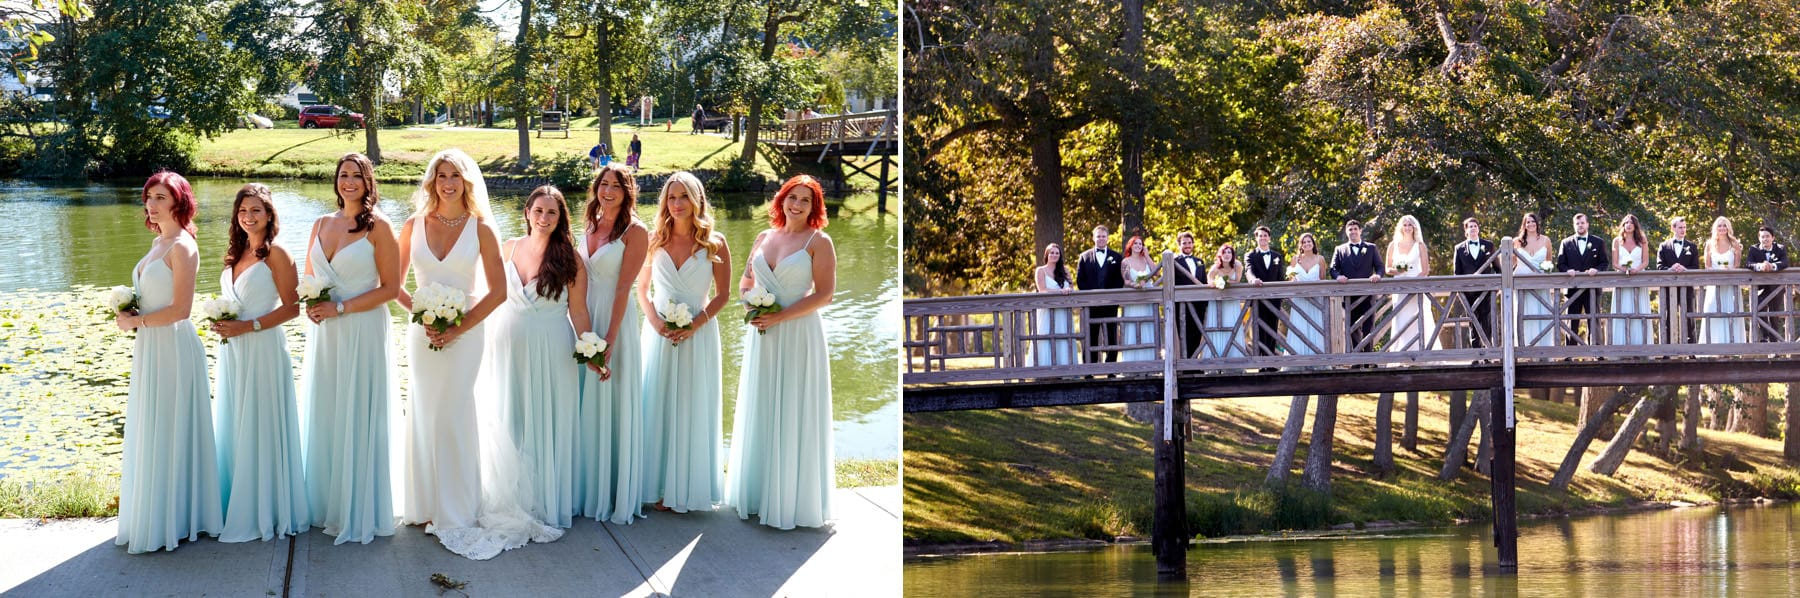 bridal party photos in spring lake